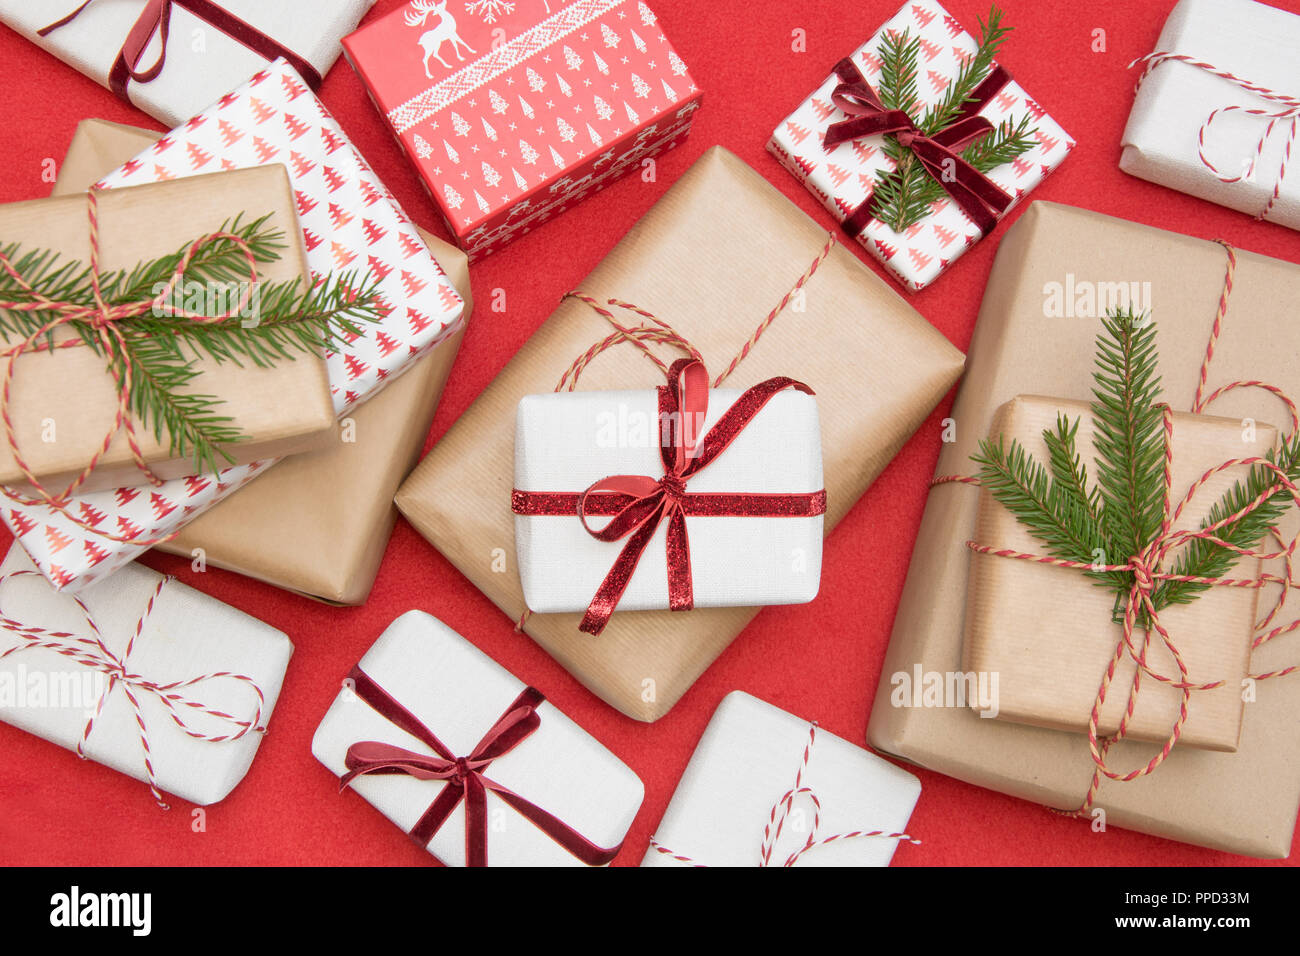 Christmas gift box wrapped in ornament paper and decorative red rope ...